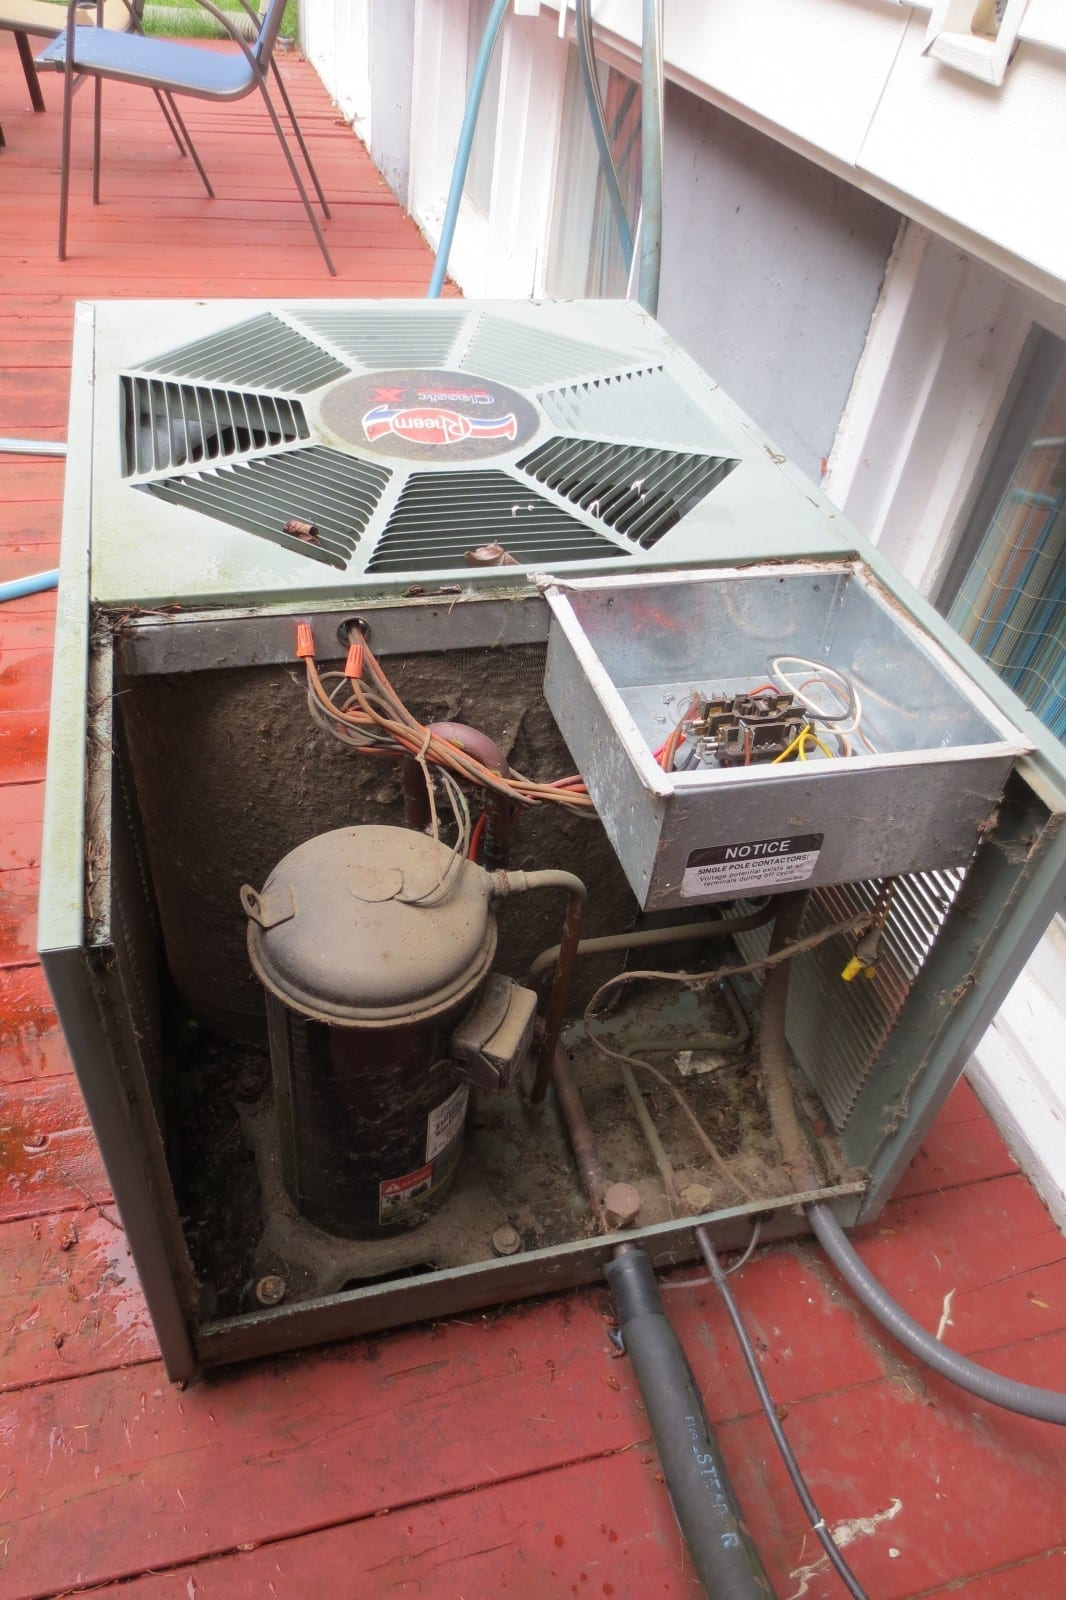 #924339 Before And After Photos Efficiency Heating & Cooling Brand New 7951 Air Conditioner Installation Portland images with 1066x1600 px on helpvideos.info - Air Conditioners, Air Coolers and more